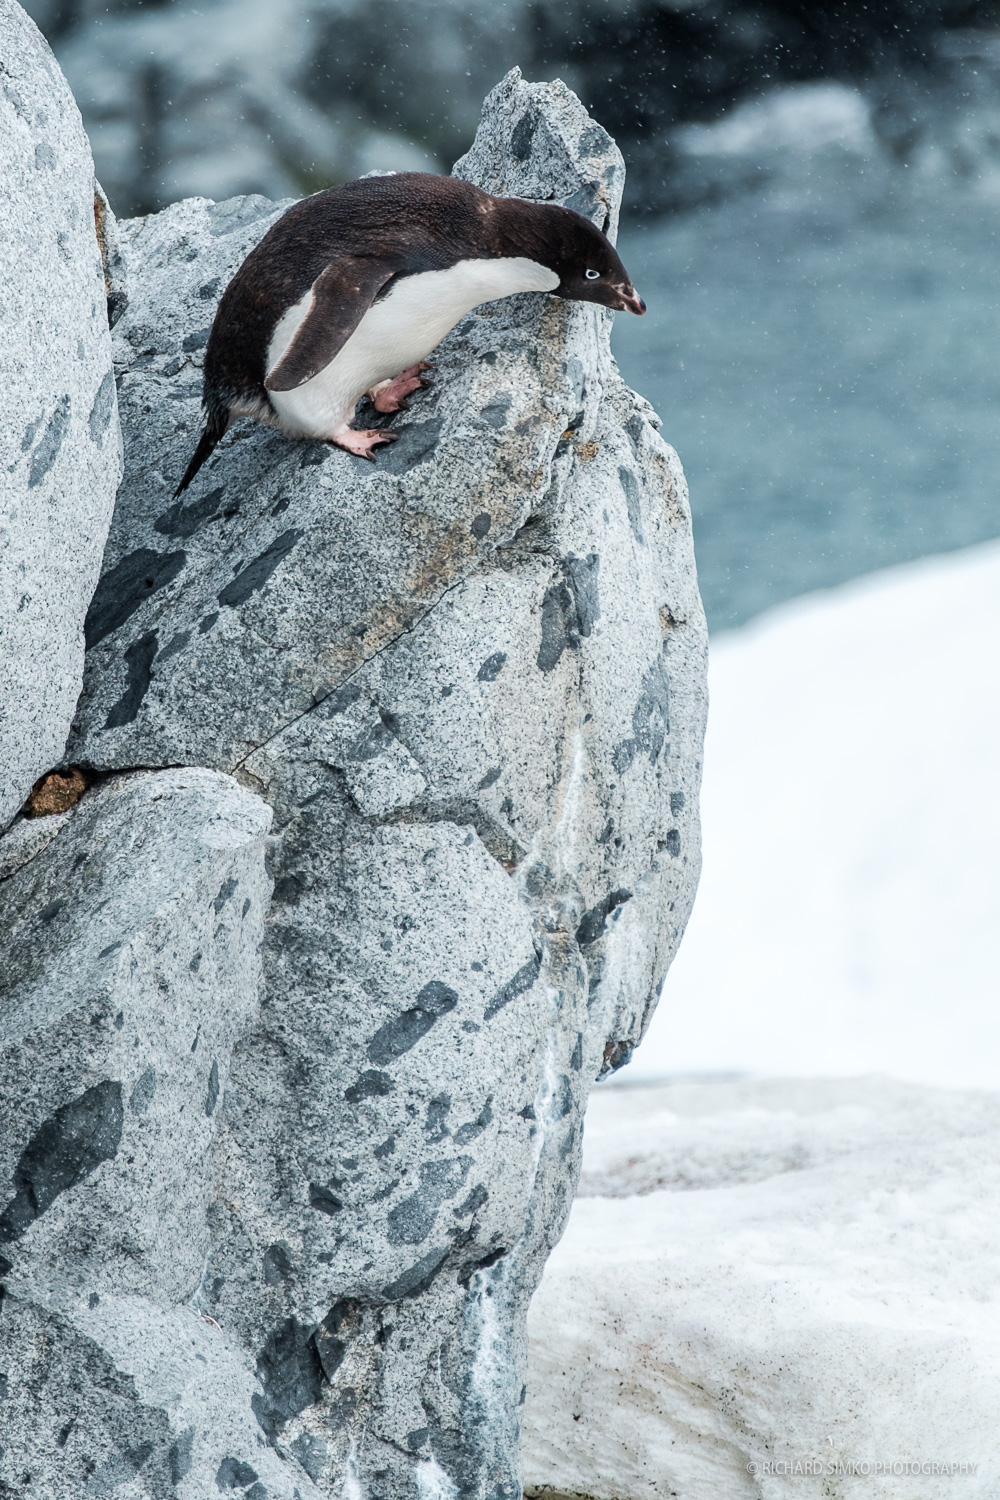 This looks a little scary. Adelie penguin is contemplating jumping of this rather large rock. Suicidal? No way, he made it. almost effortlesly.